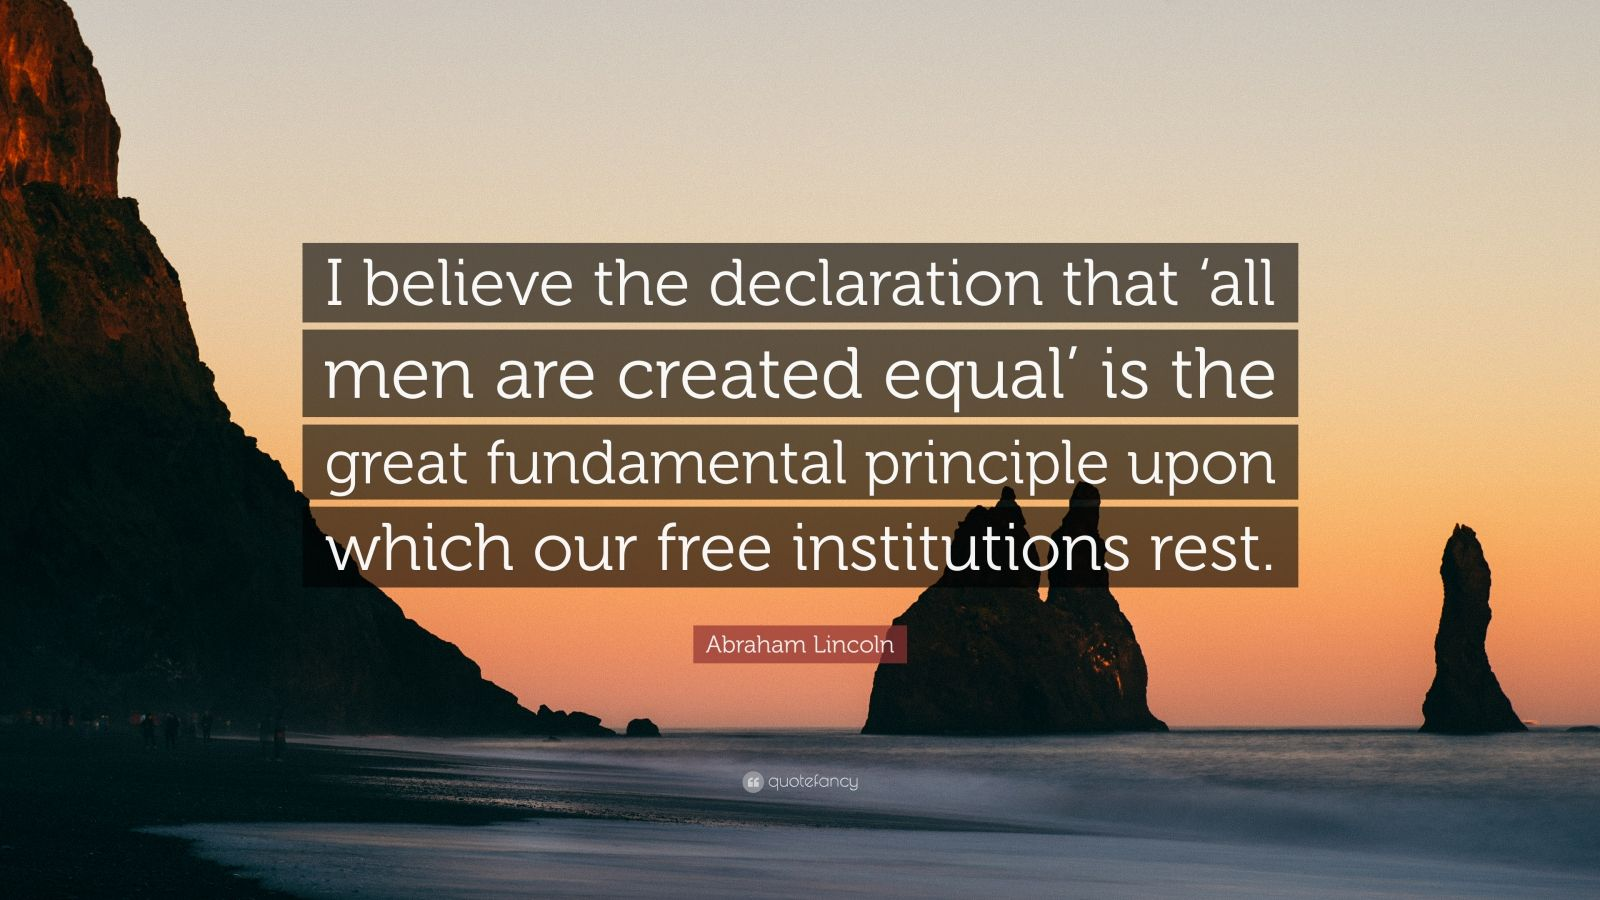 """Abraham Lincoln Quote: """"I believe the declaration that 'all men are created equal' is the great fundamental principle upon which our free institutions rest."""""""